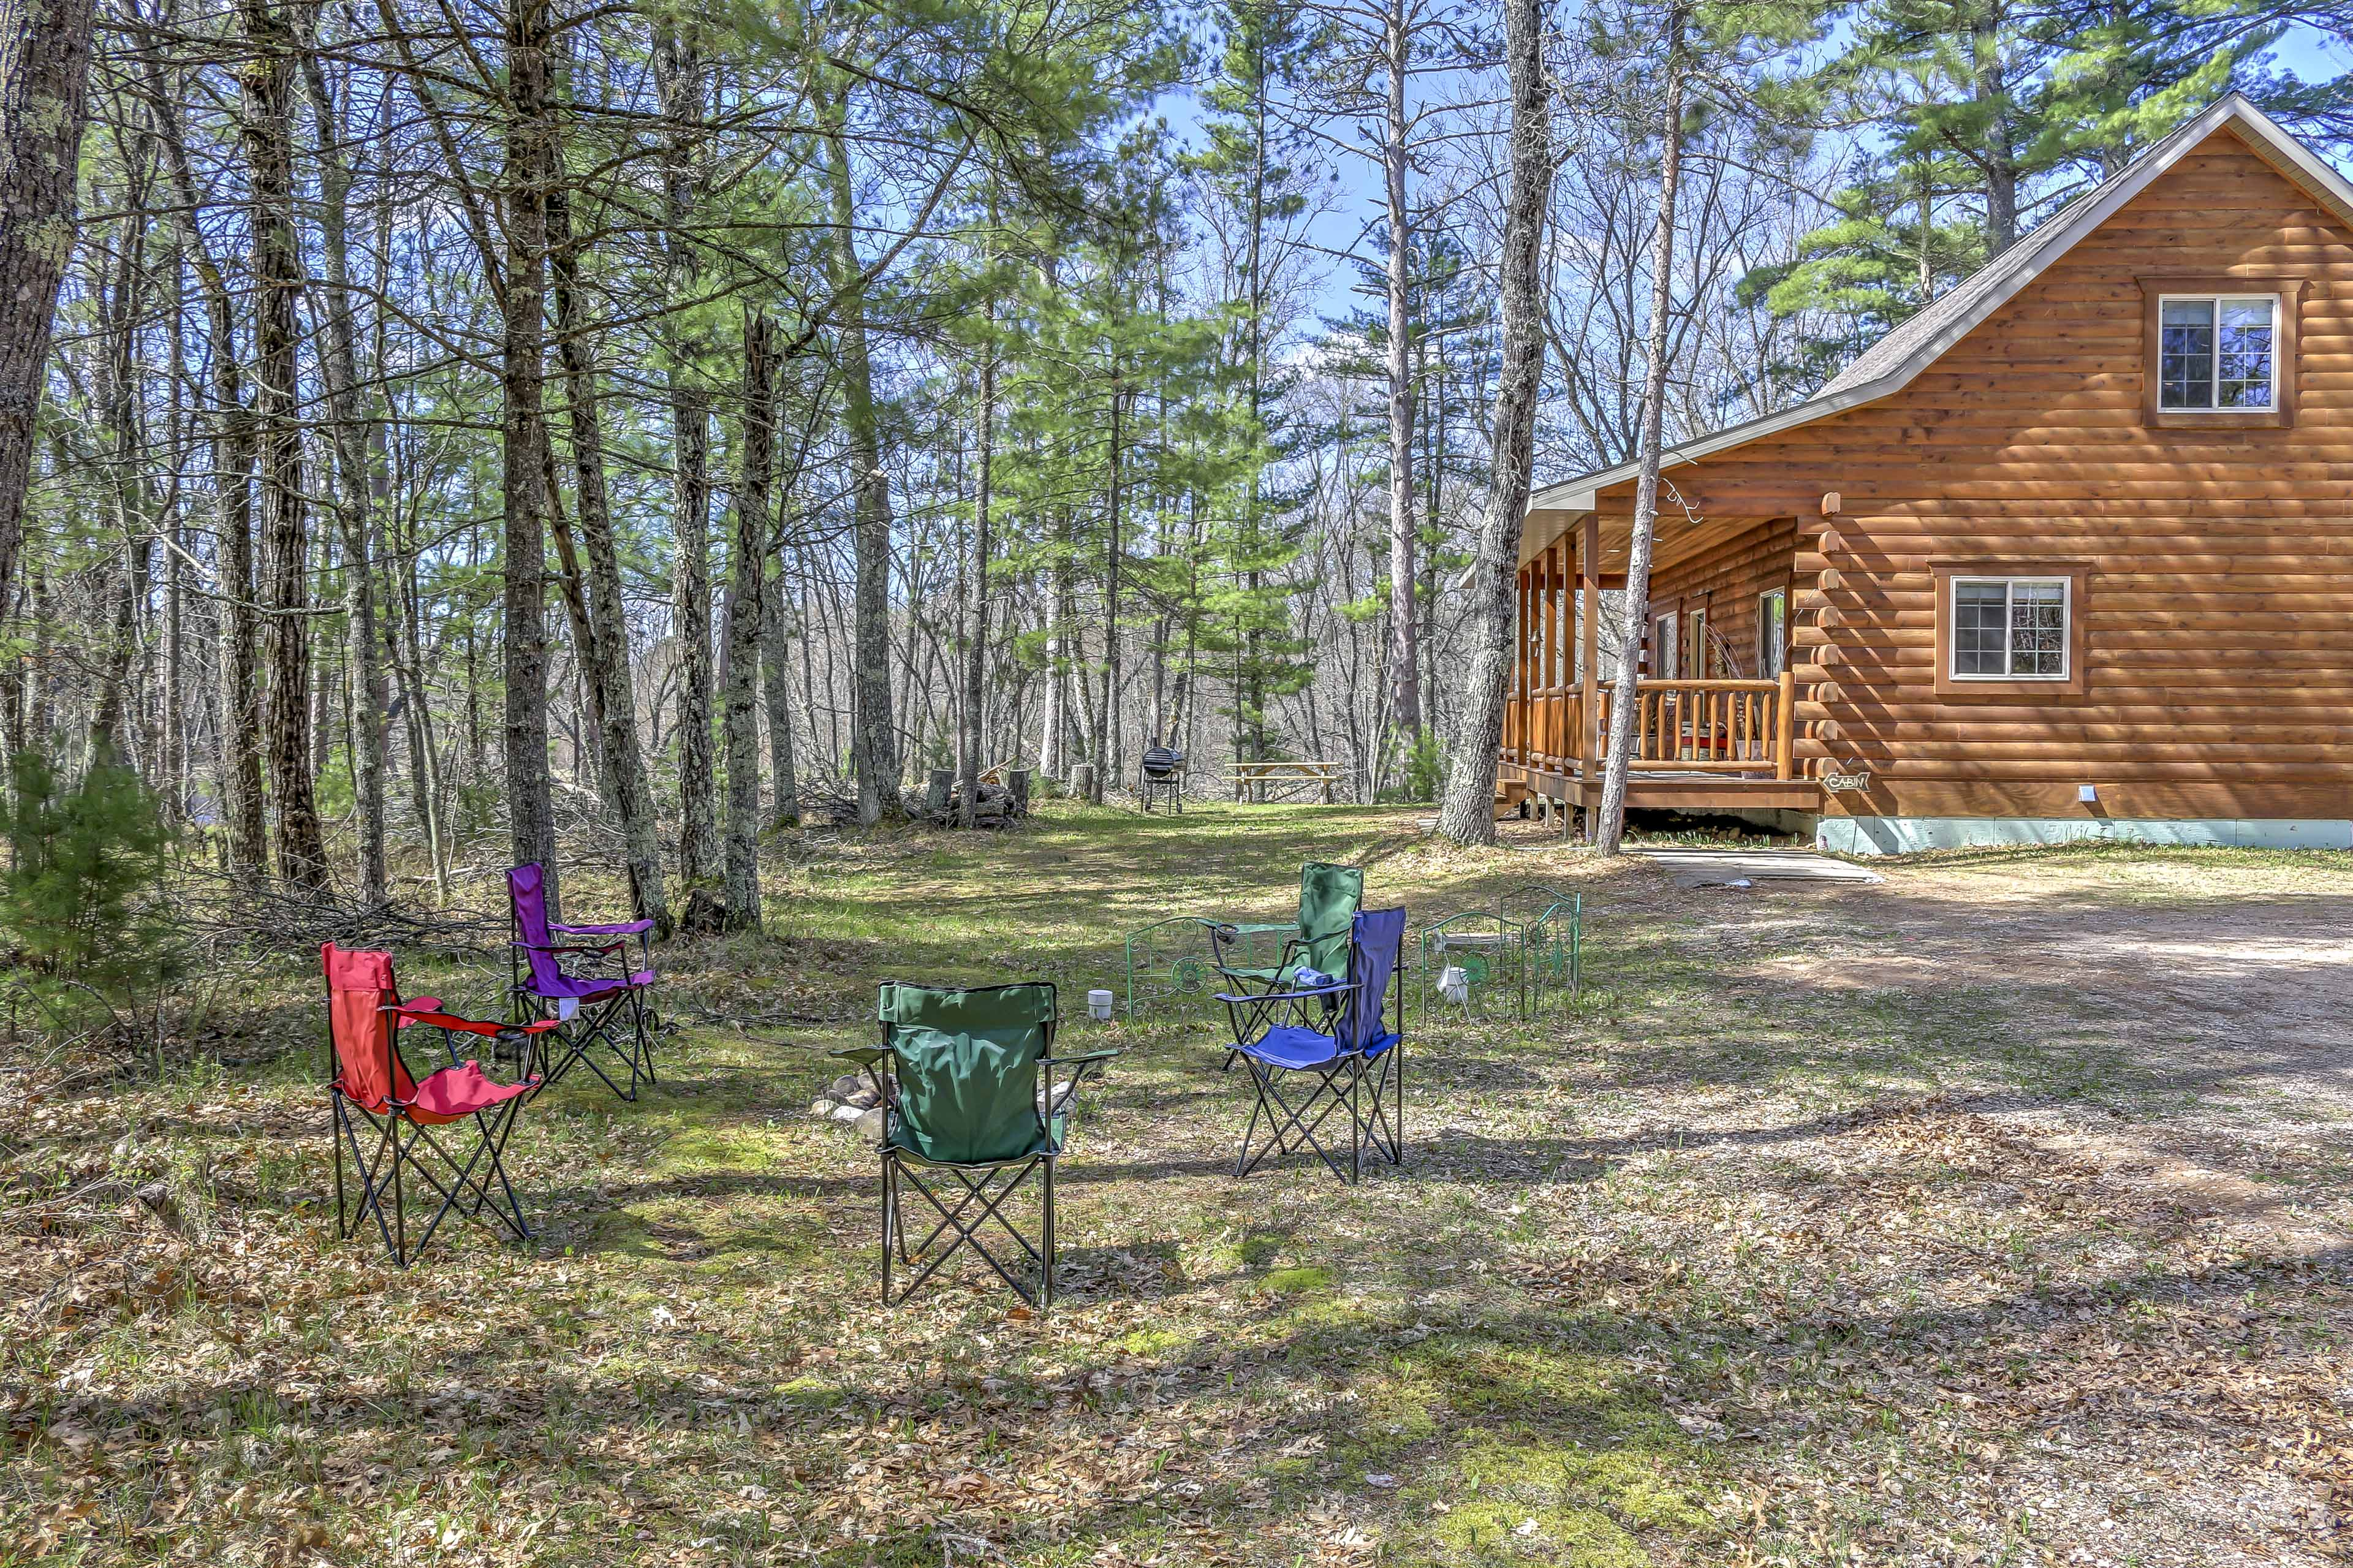 Enjoy time spent with family on the camping chairs.